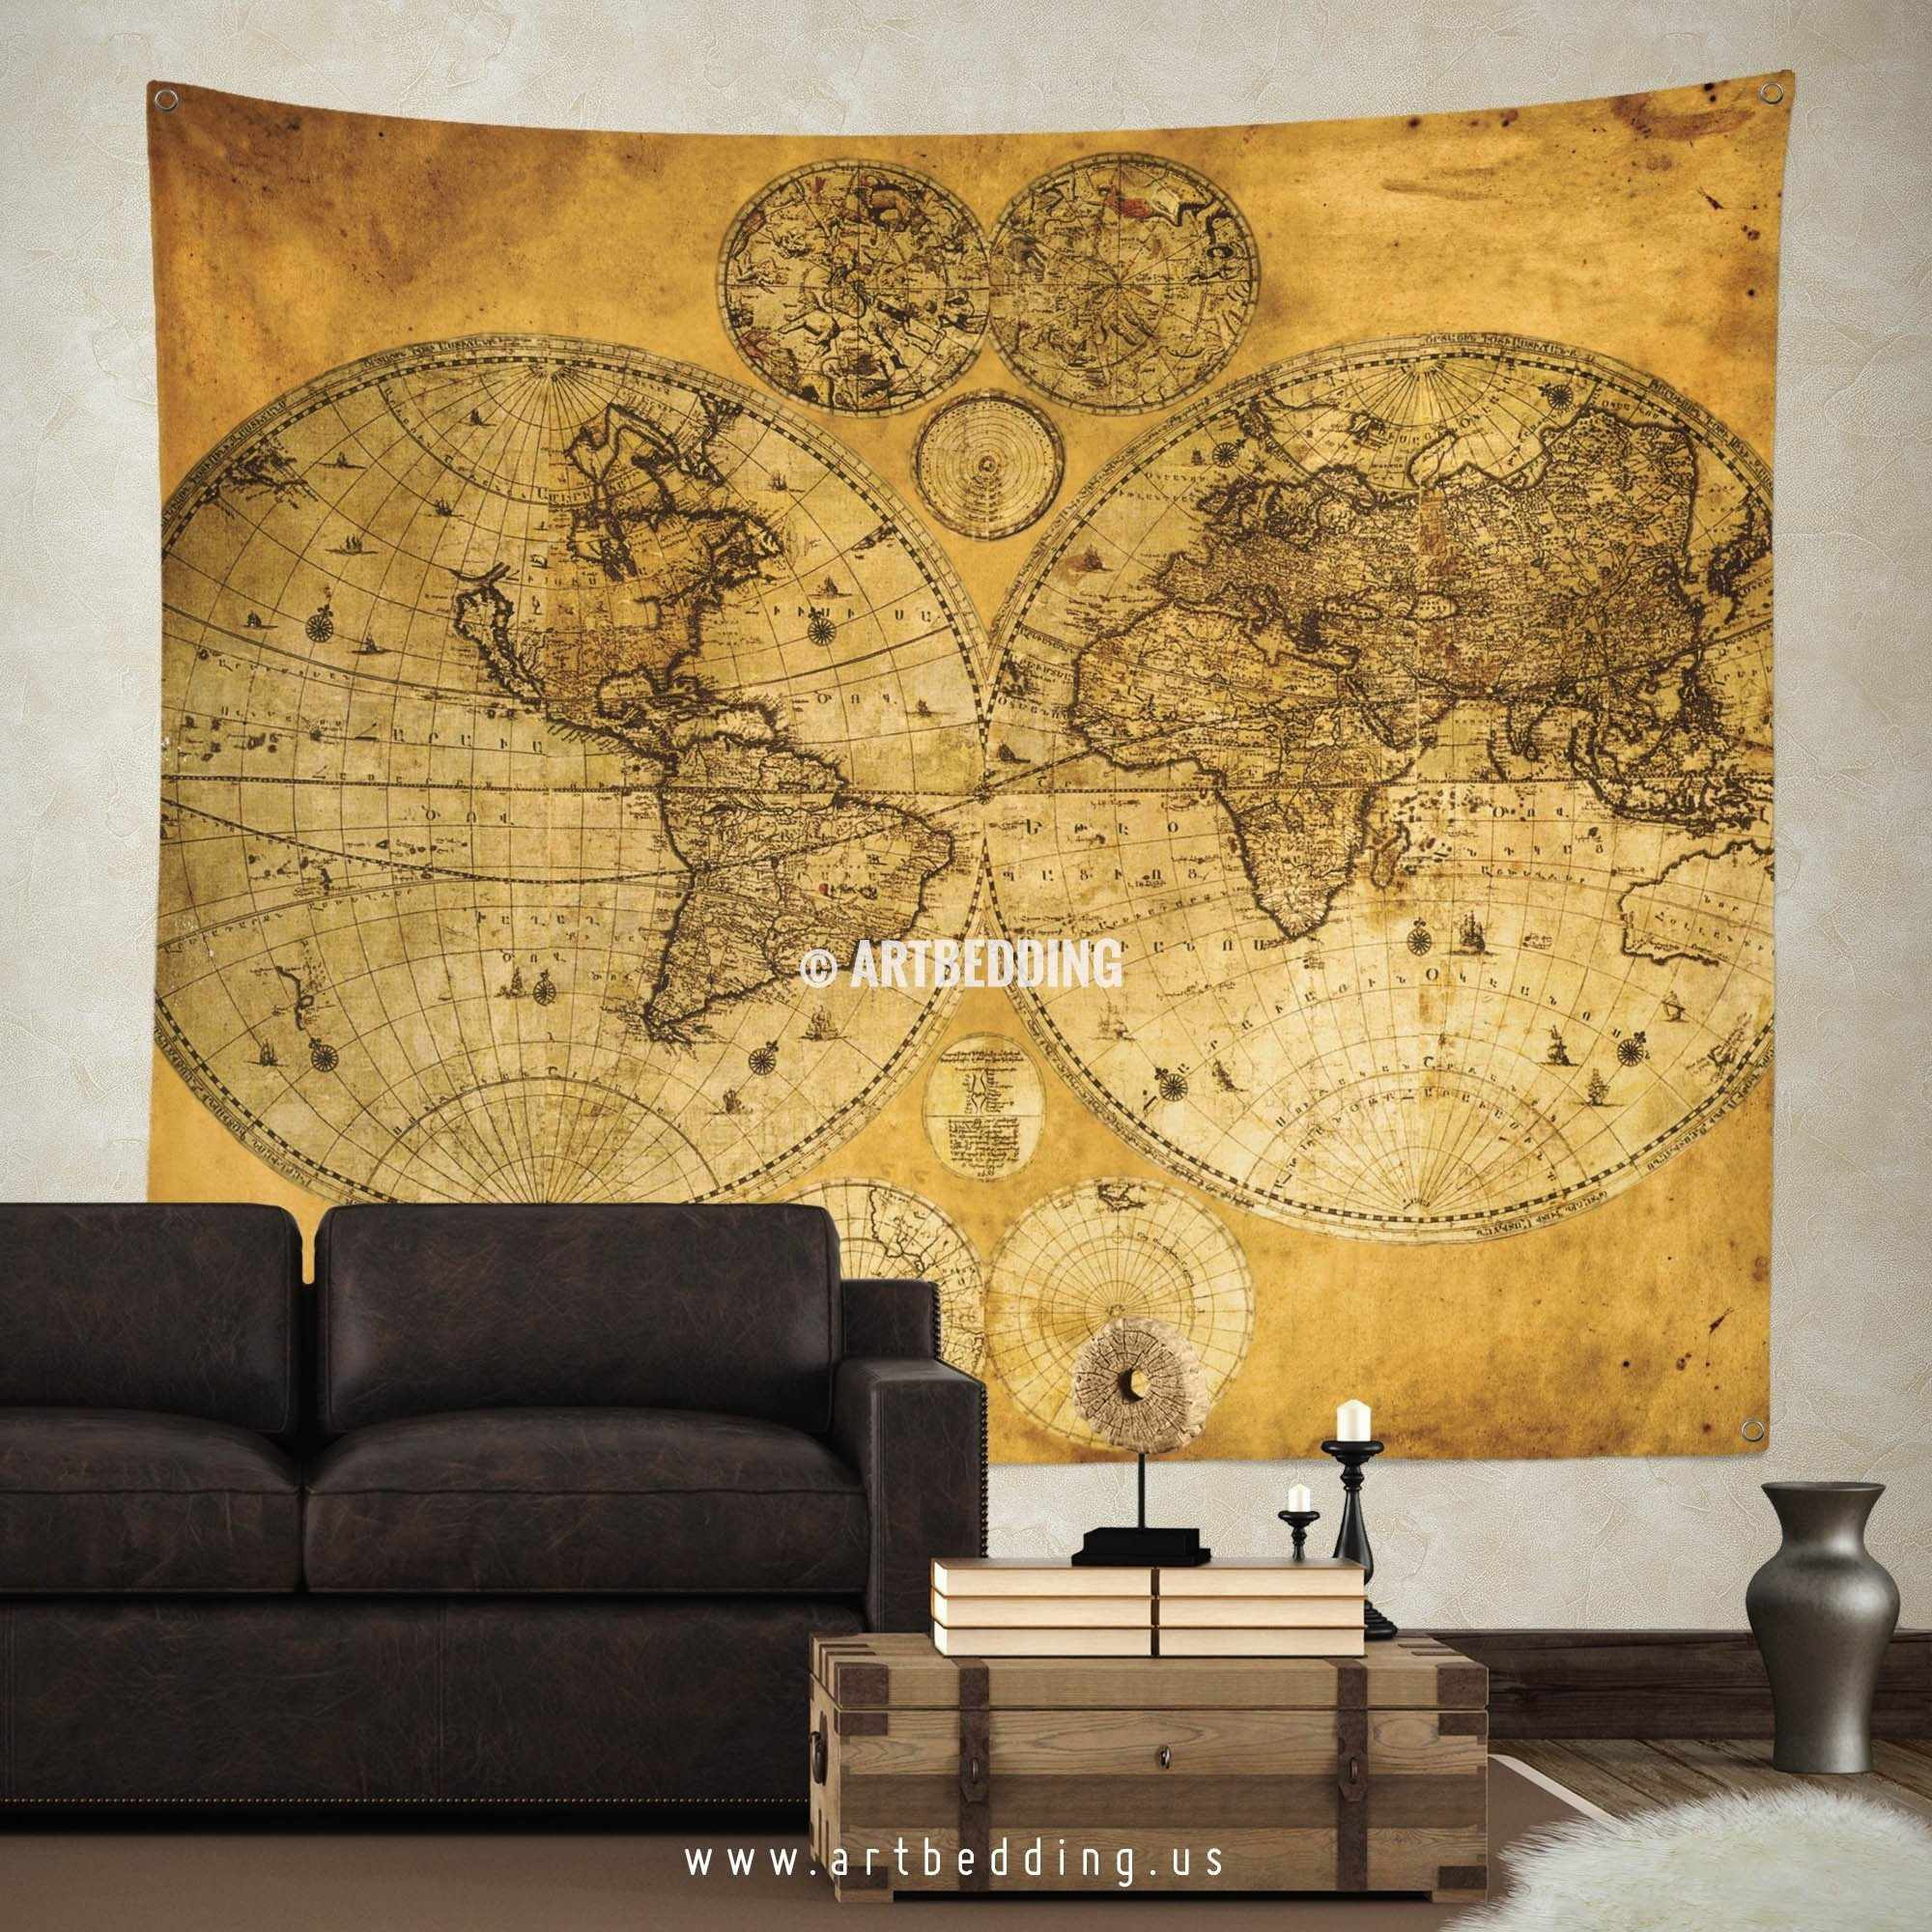 Vintage world map wall tapestry vintage interior world map wall old two hemispheres world map wall tapestry vintage interior world map wall hanging old gumiabroncs Choice Image